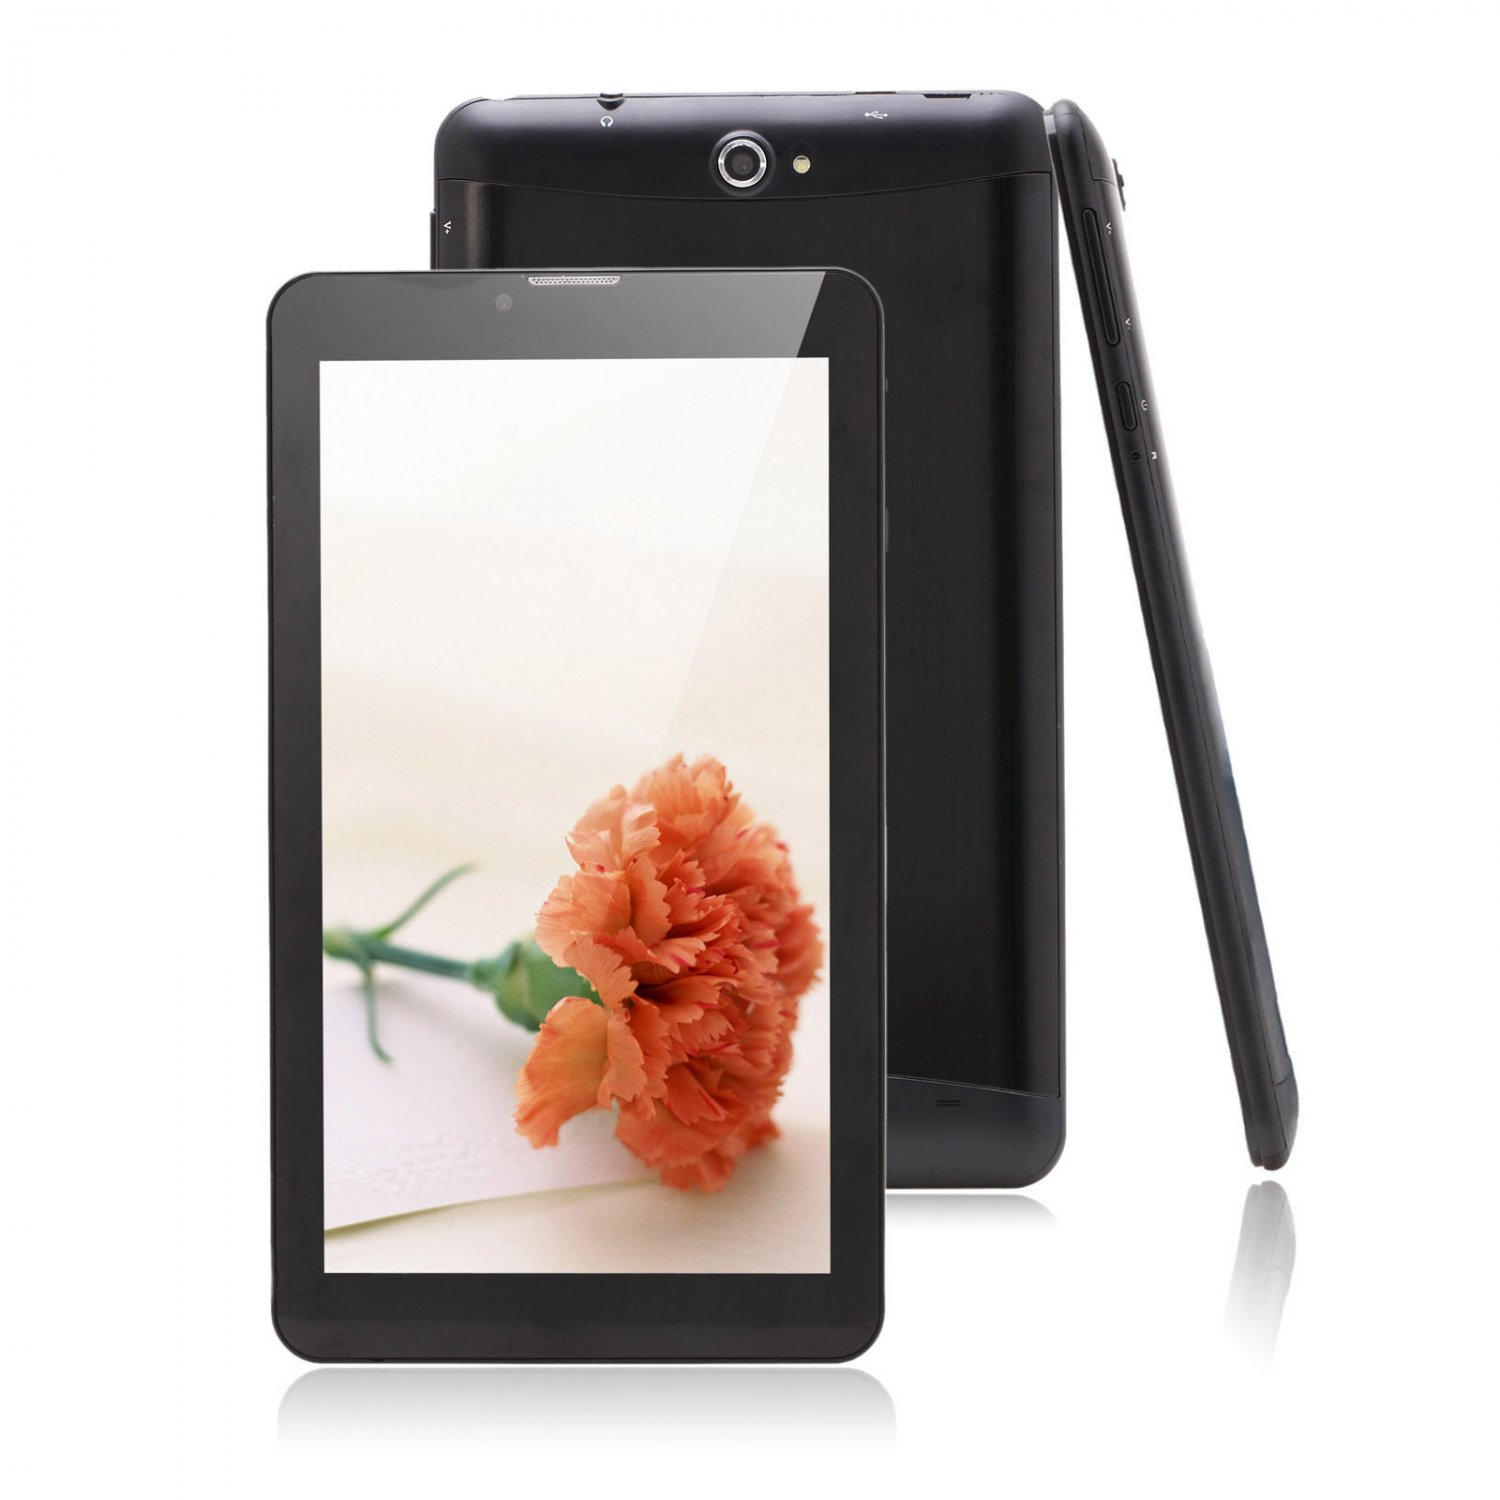 "iRulu 7"" 1024*600 3G Phablet Tablet Dual Core&Cam WIFI Android 4.2 GPS Bluetooth"